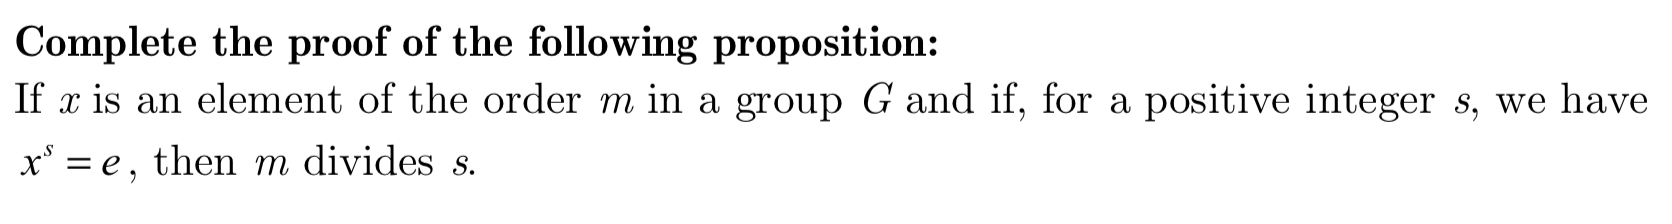 Complete the proof of the following proposition: If x is an element of the order m in a group G and if, for a positive integer s, we have xe then m divides s.